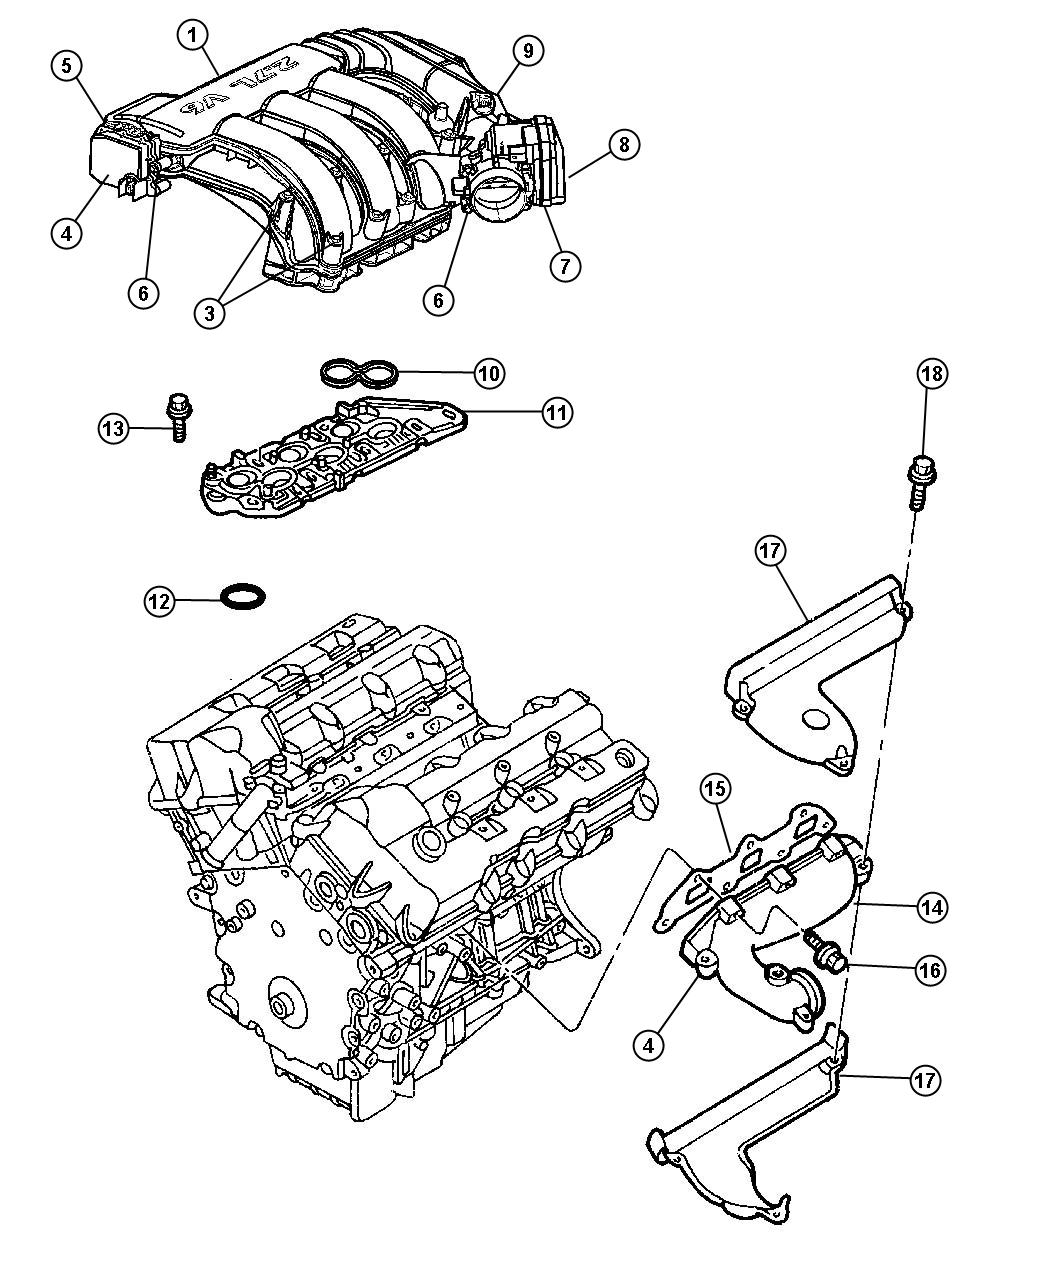 2000 dodge intrepid engine wiring diagram